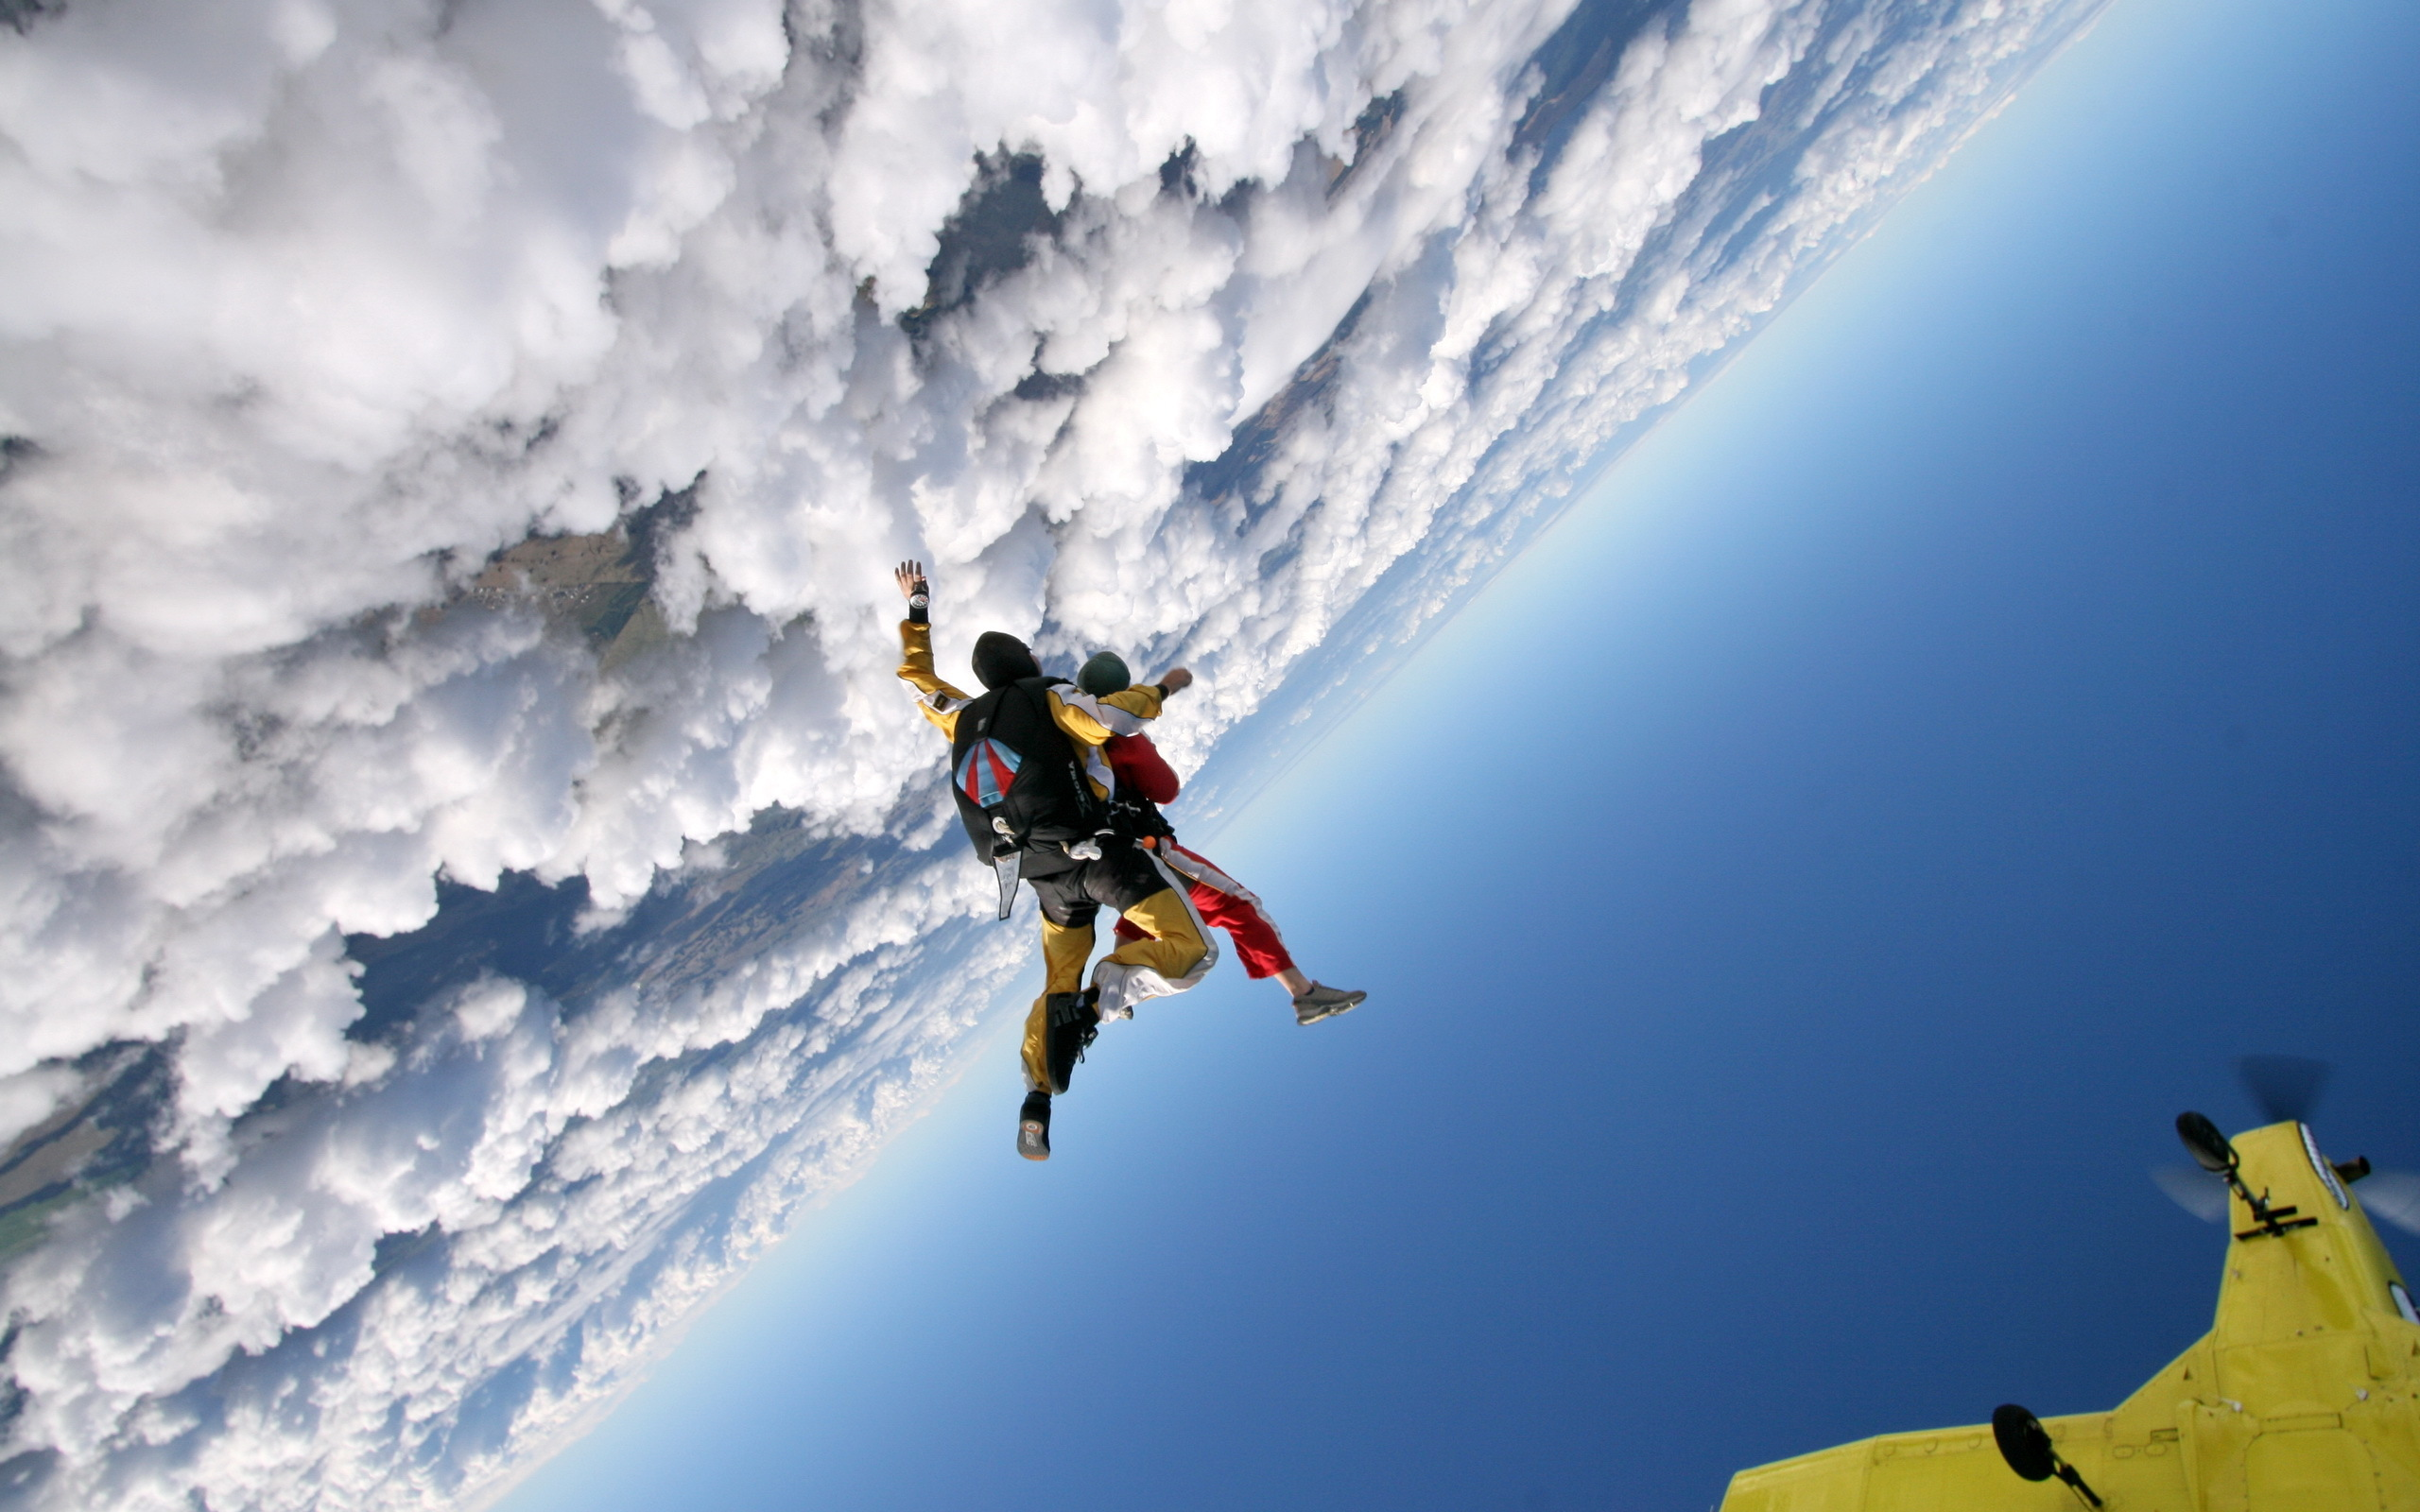 Skydiving Backgrounds, Pictures, Images